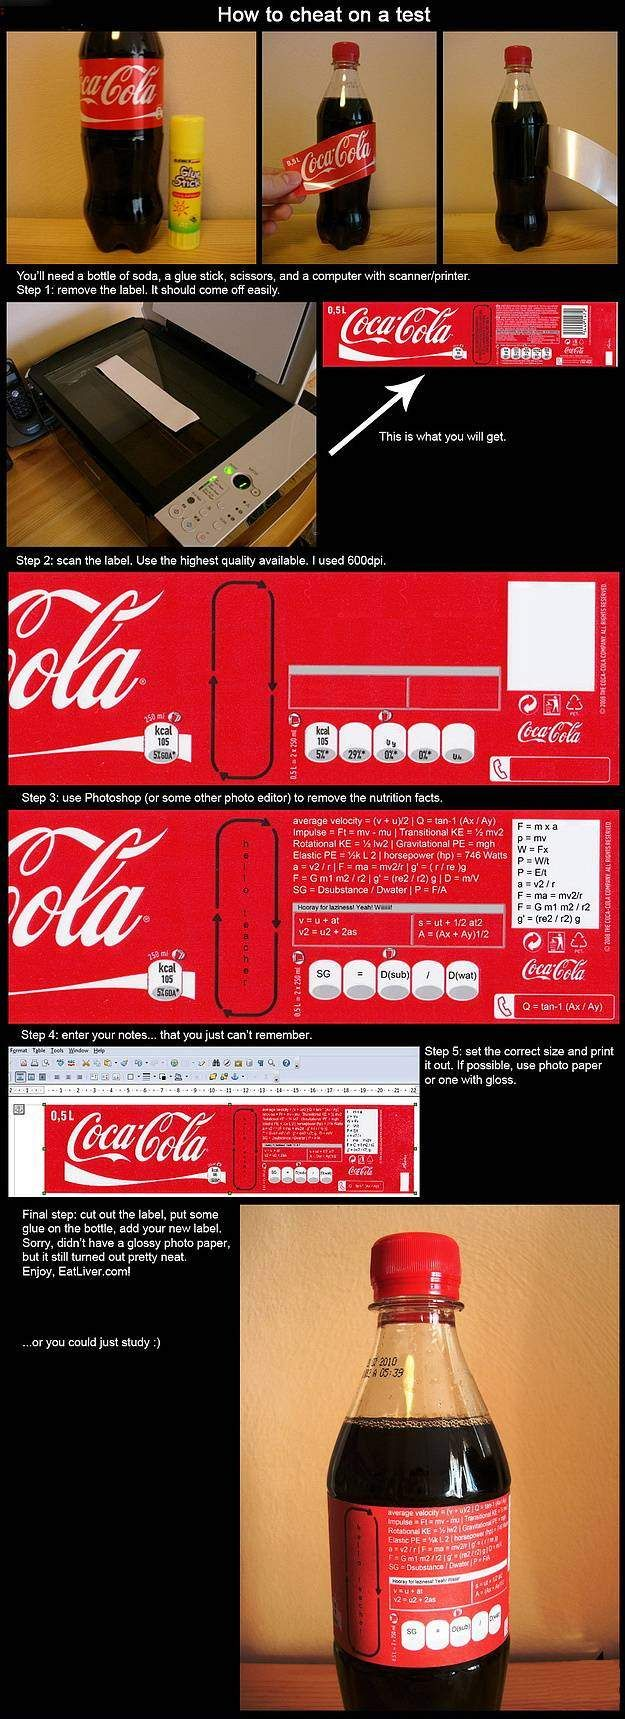 how to cheat funny image cola bottle